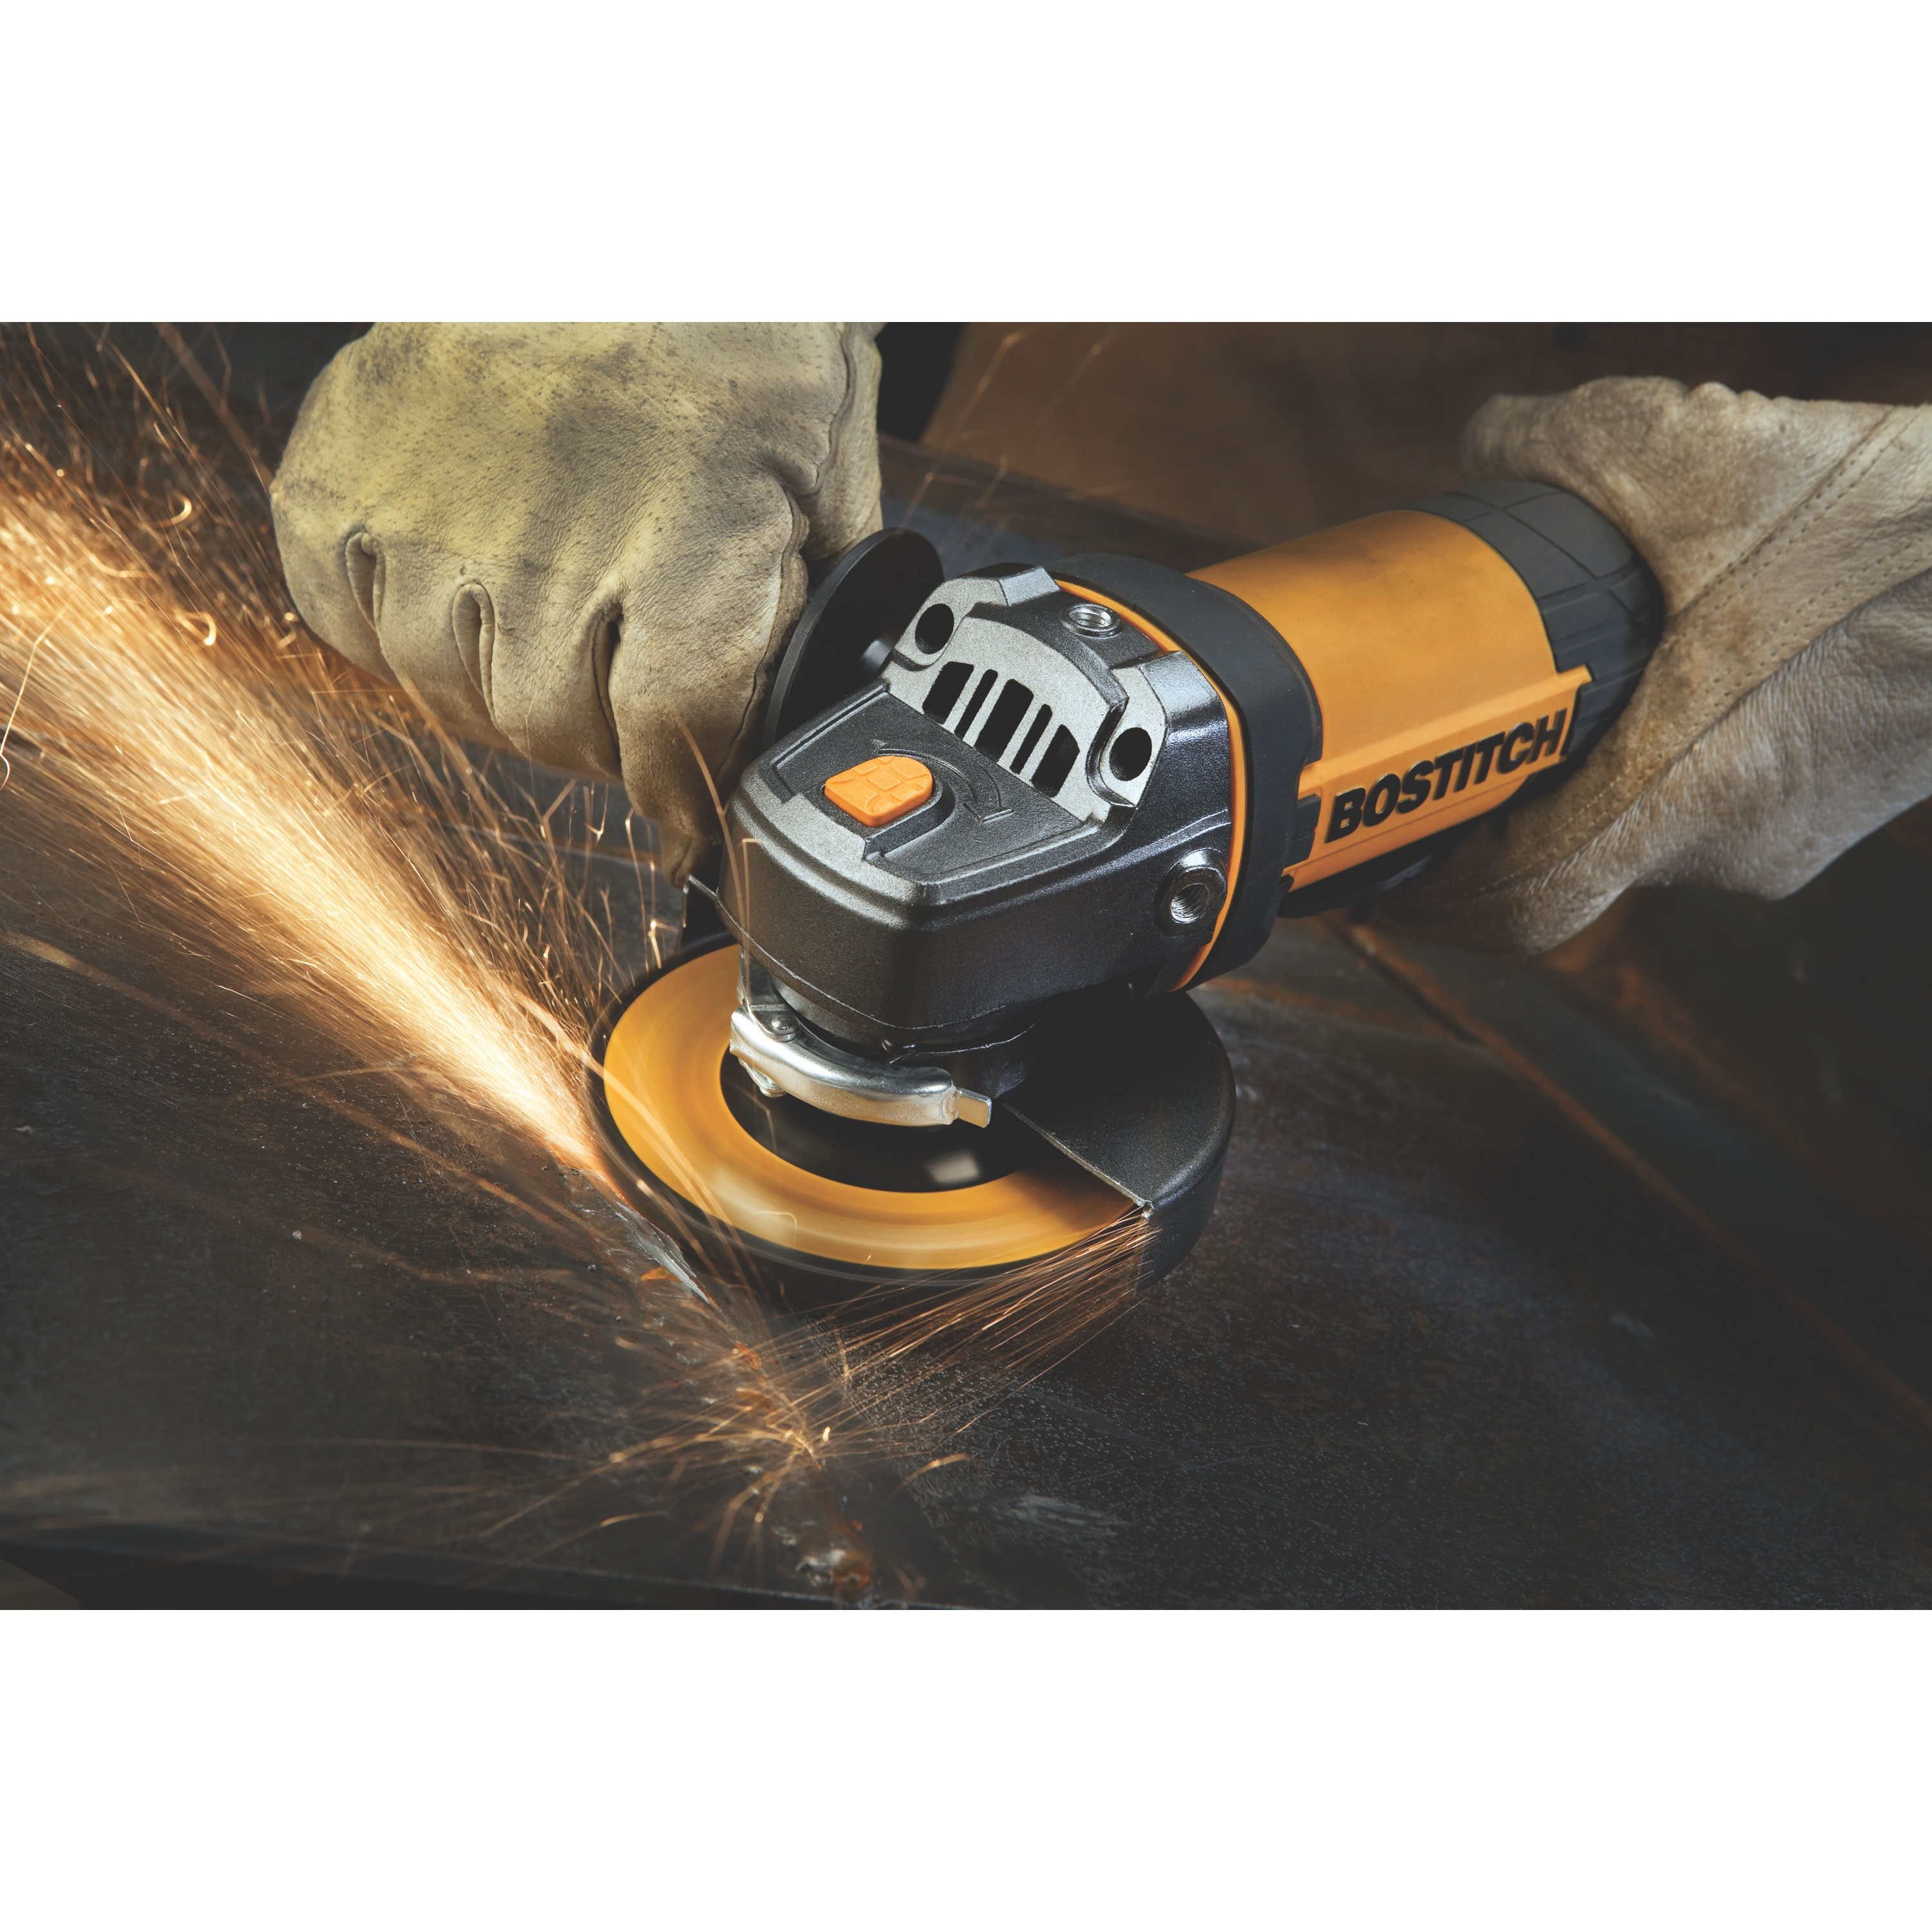 Bostitch - 7 Amp 412 Angle Grinder Kit - BTE820K